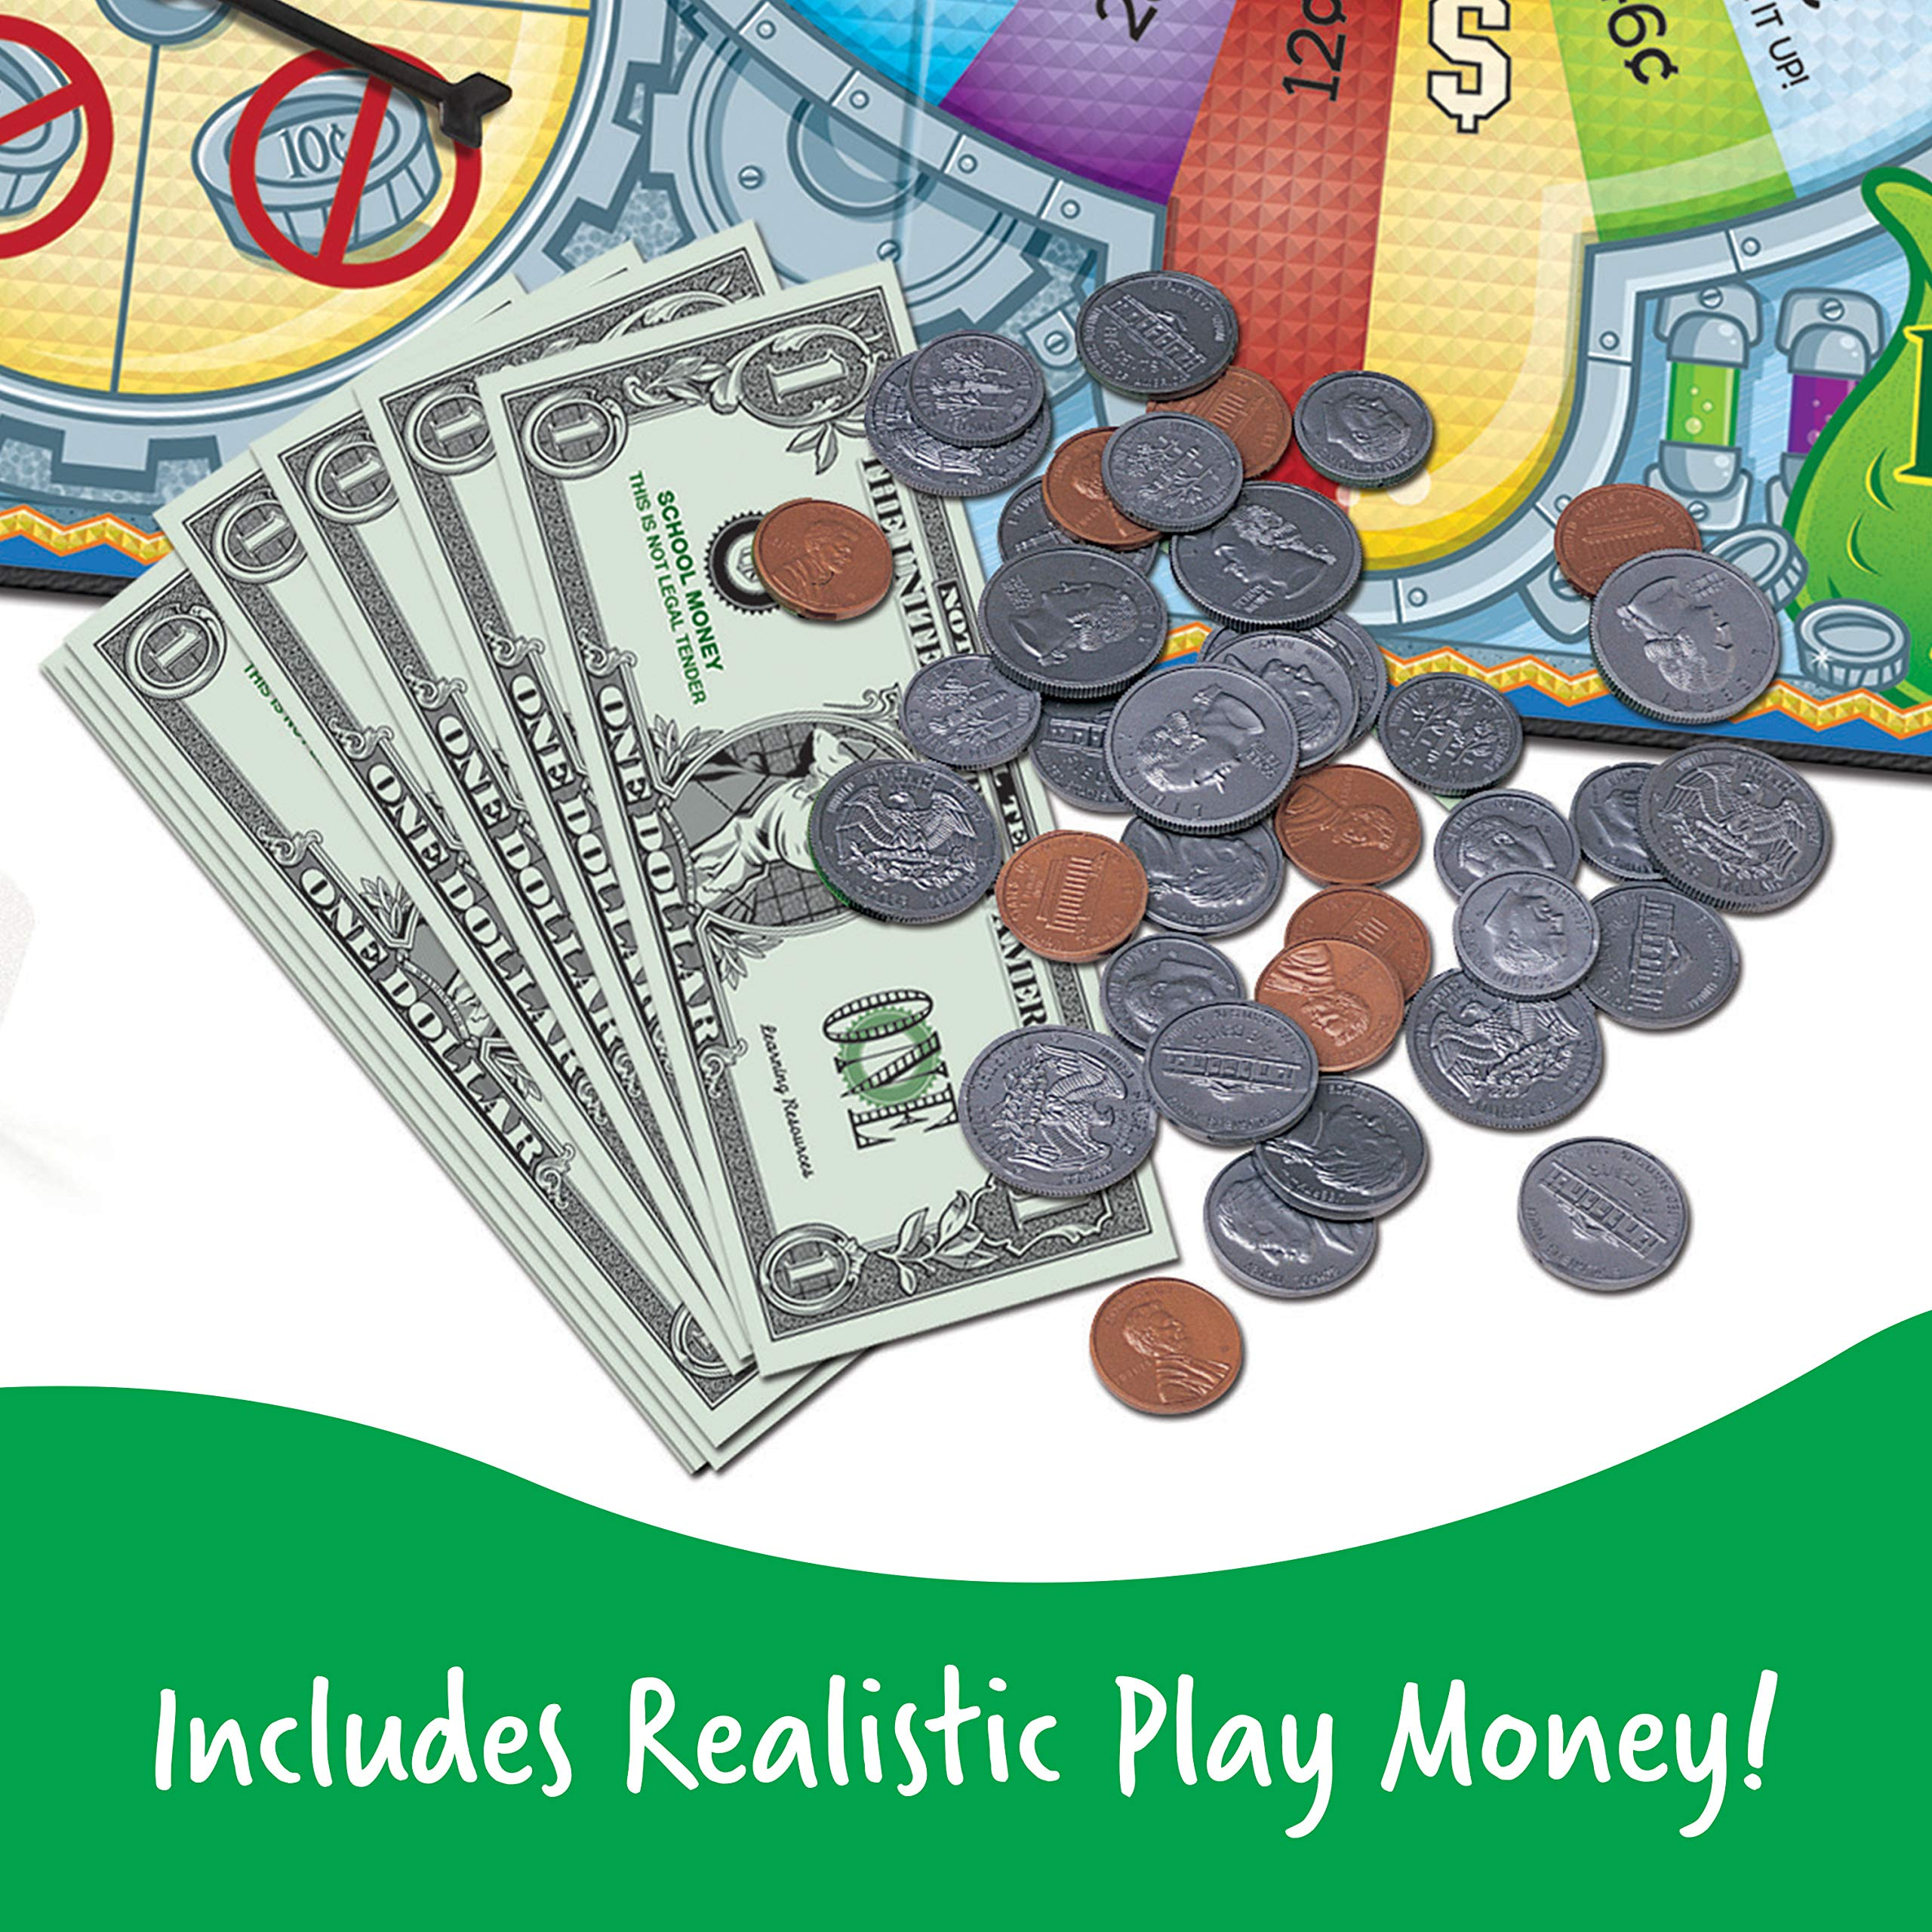 Learning Resources Money Bags Coin Value Game, Money Recognition, Counting Game, Play Money for Kids, Ages 7+